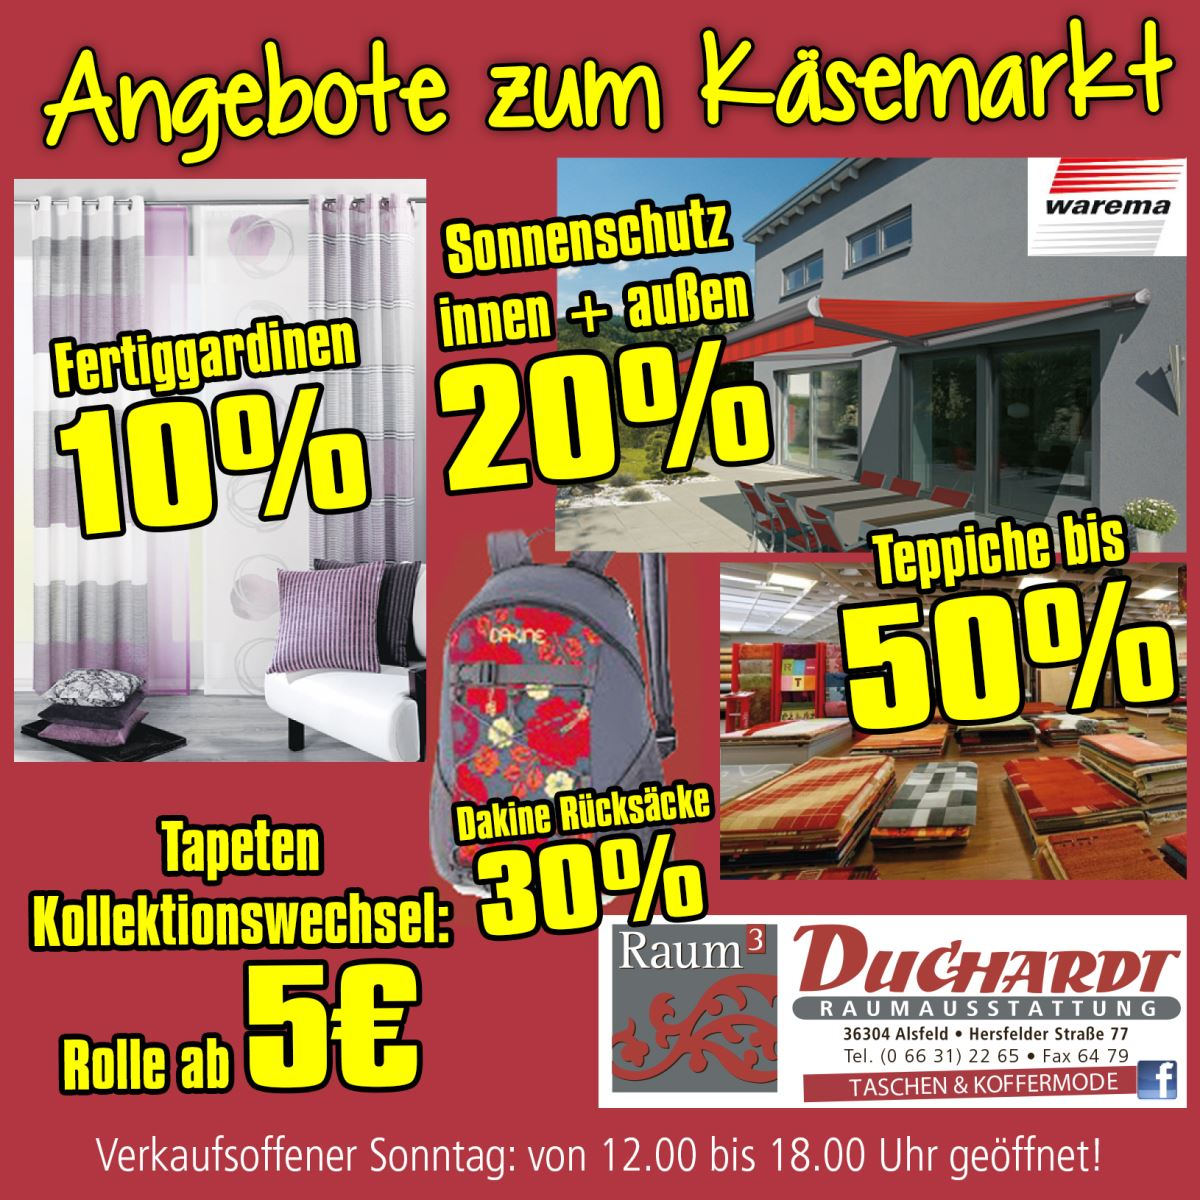 alsfelder k semarkt mit verkaufsoffenem sonntag am 24 april 2016. Black Bedroom Furniture Sets. Home Design Ideas